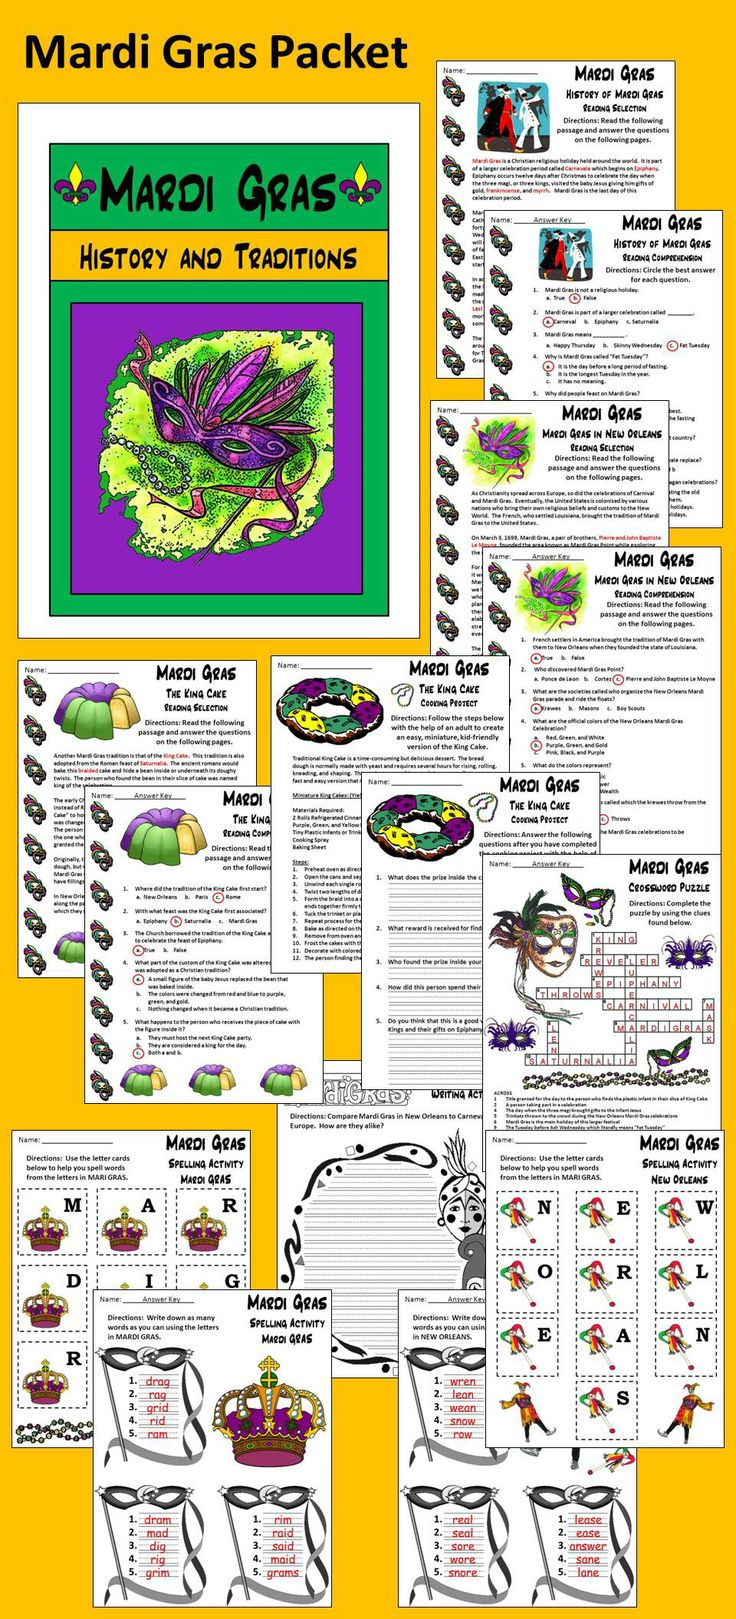 23 best mardi gras images on pinterest mardi gras activities mardi gras history and traditions activity packet this colorful mardi gras packet traces the history m4hsunfo